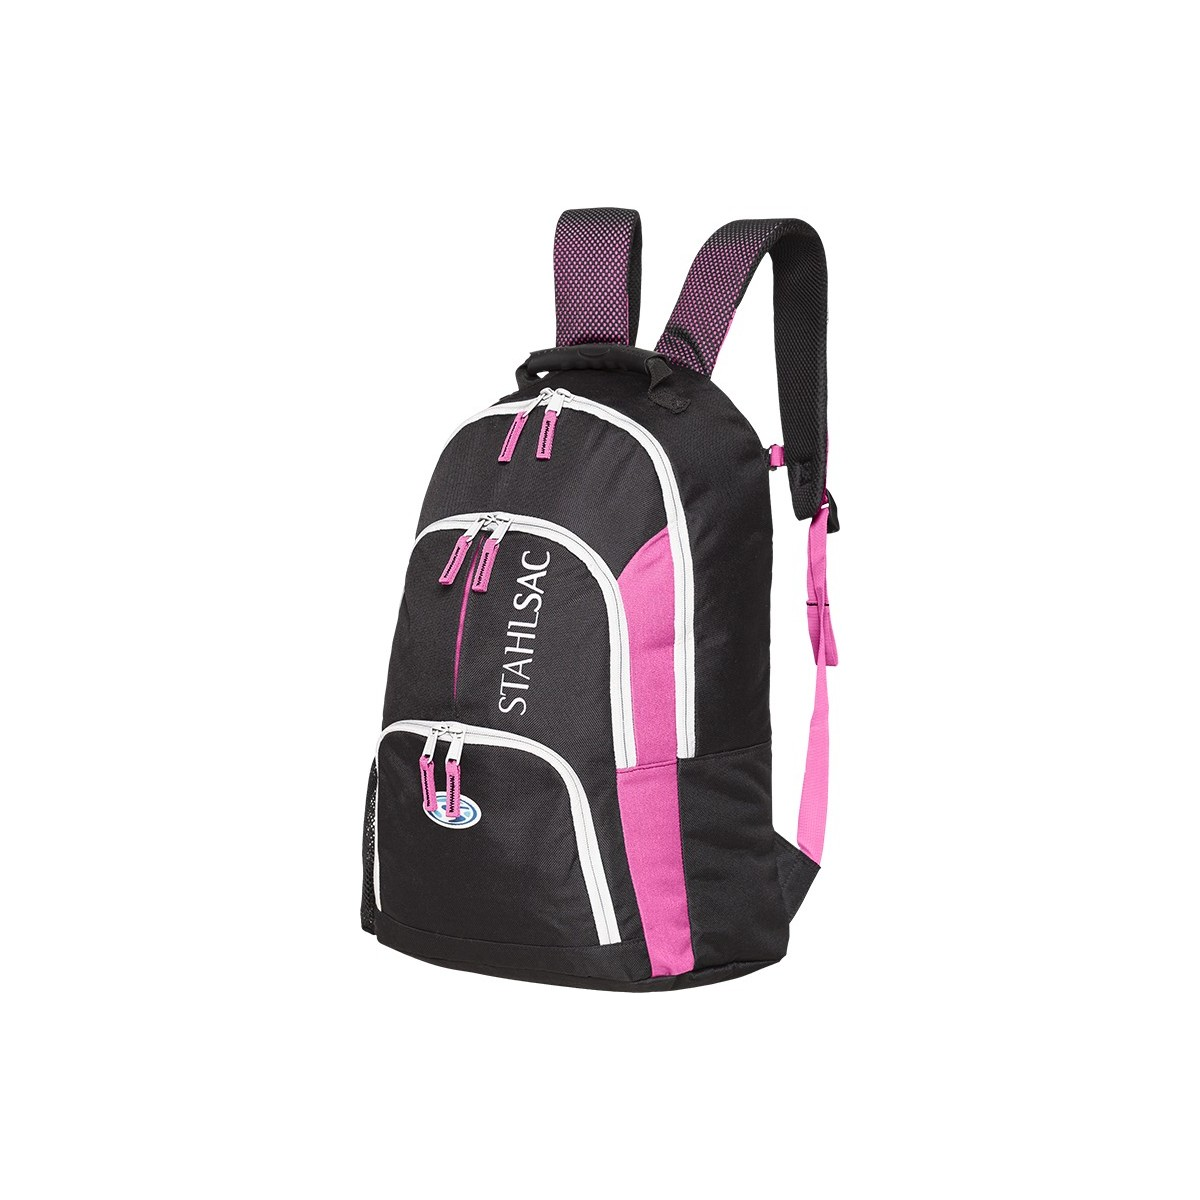 Stahlsac Bora Bora Backpack Bag